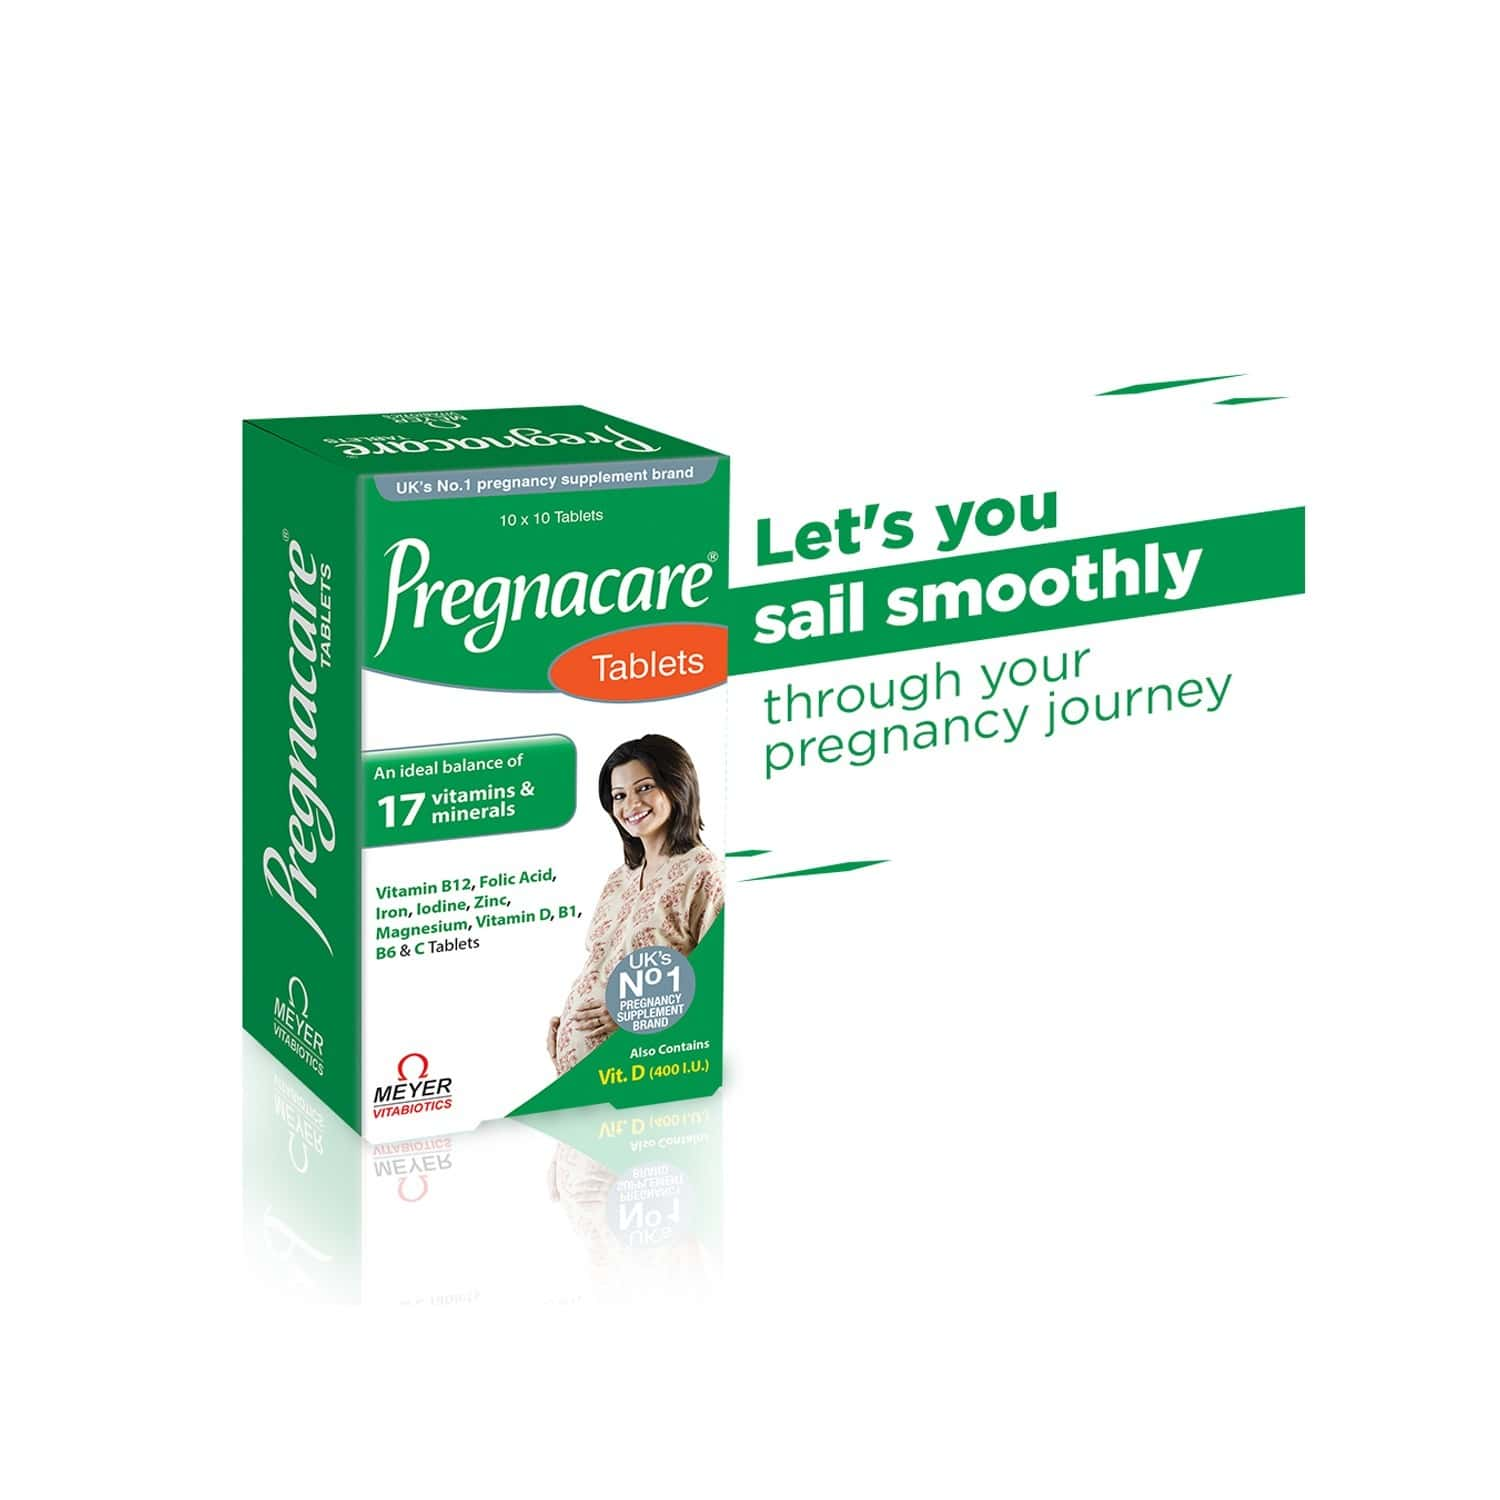 Pregnacare - Pregnancy Supplement (19 Vitamins And Minerals) - 100 Tablets With Wellman 30 Tablet Free